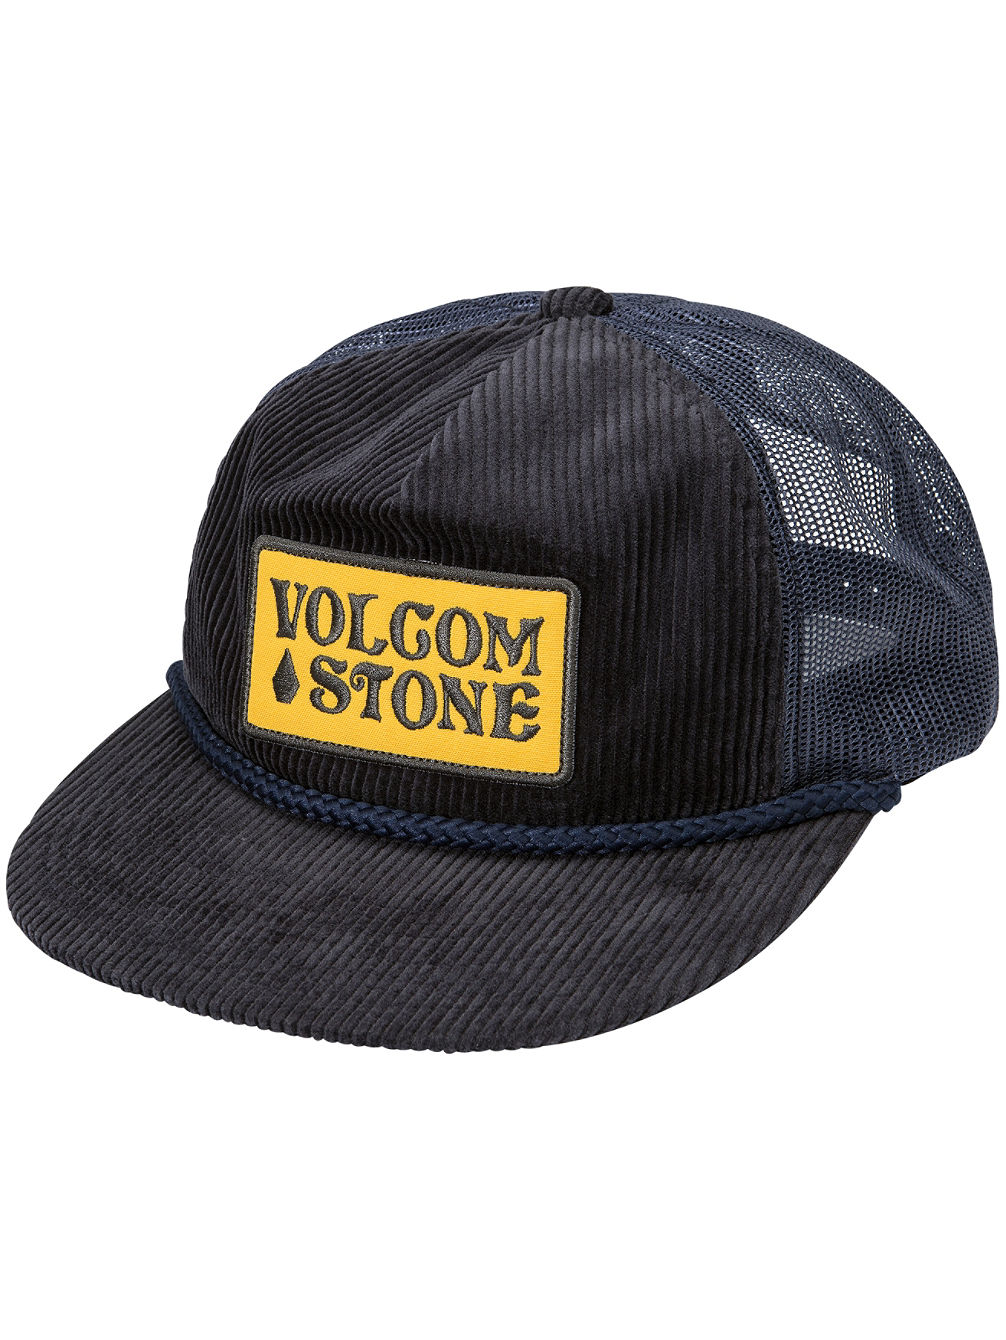 ce56aad314b72 Buy Volcom Wrecker Cheese Cap online at Blue Tomato